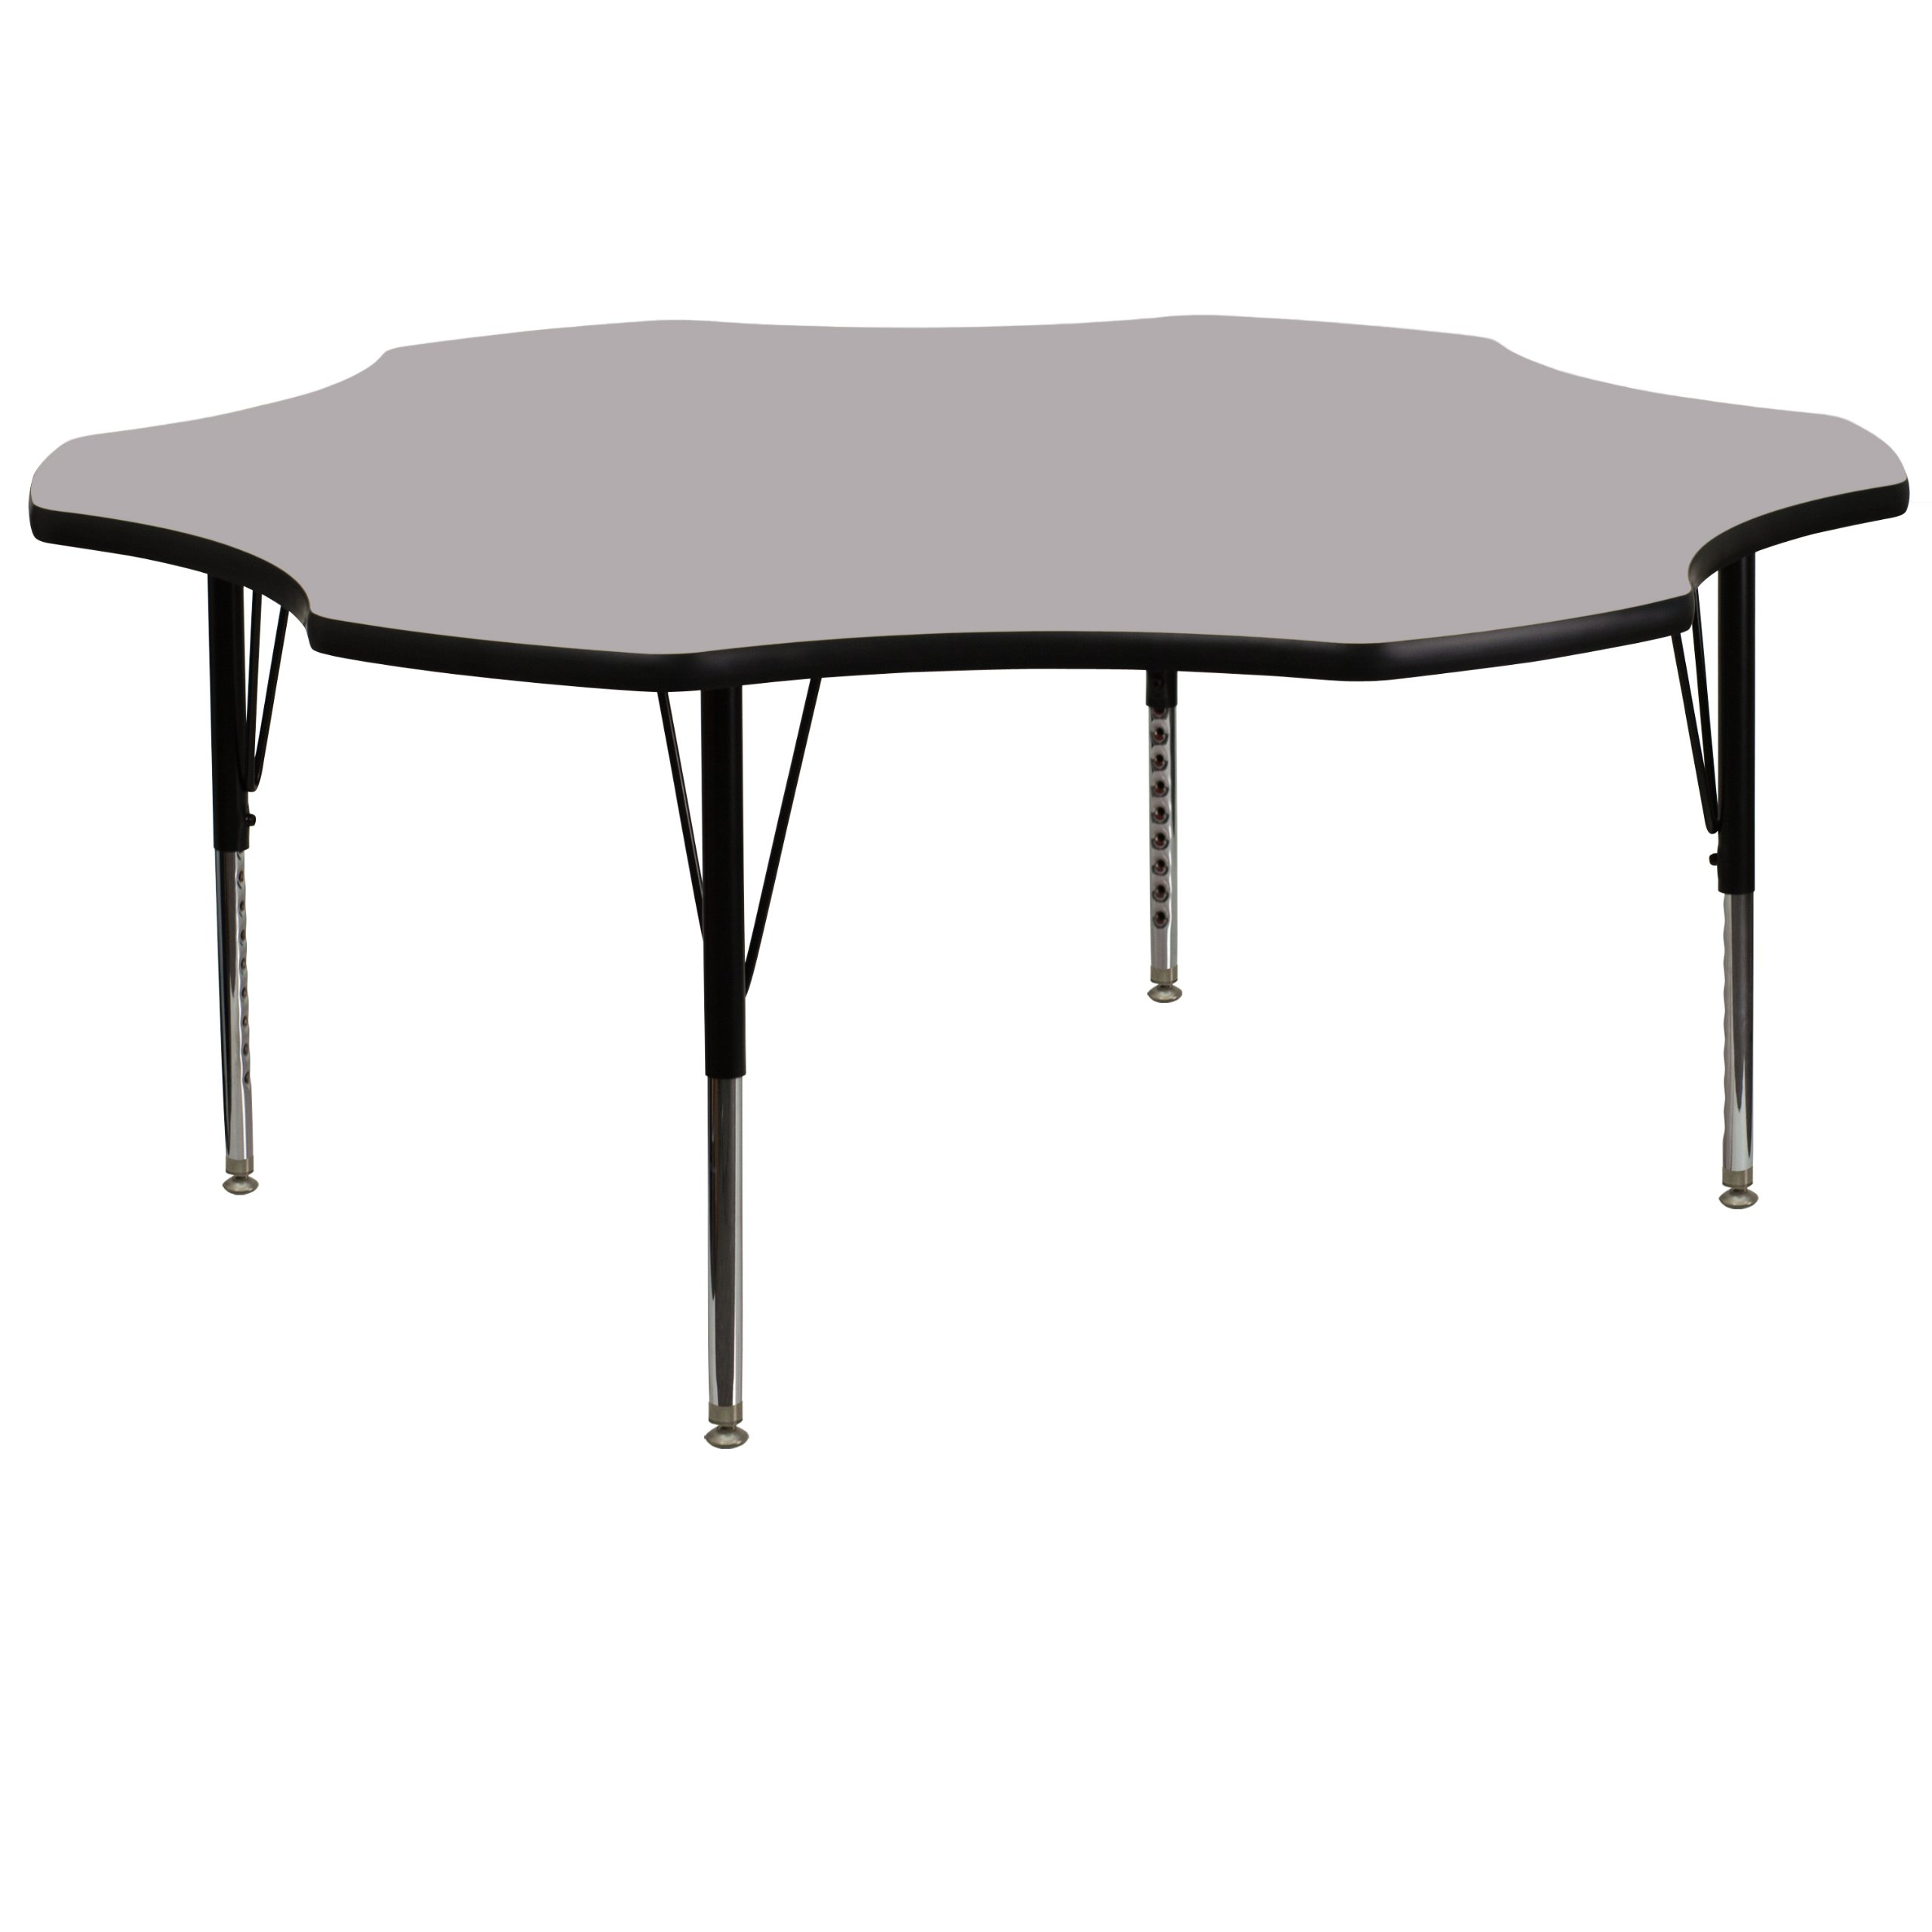 Flash Furniture 60'' Flower Grey Thermal Laminate Activity Table - Height Adjustable Short Legs by Flash Furniture